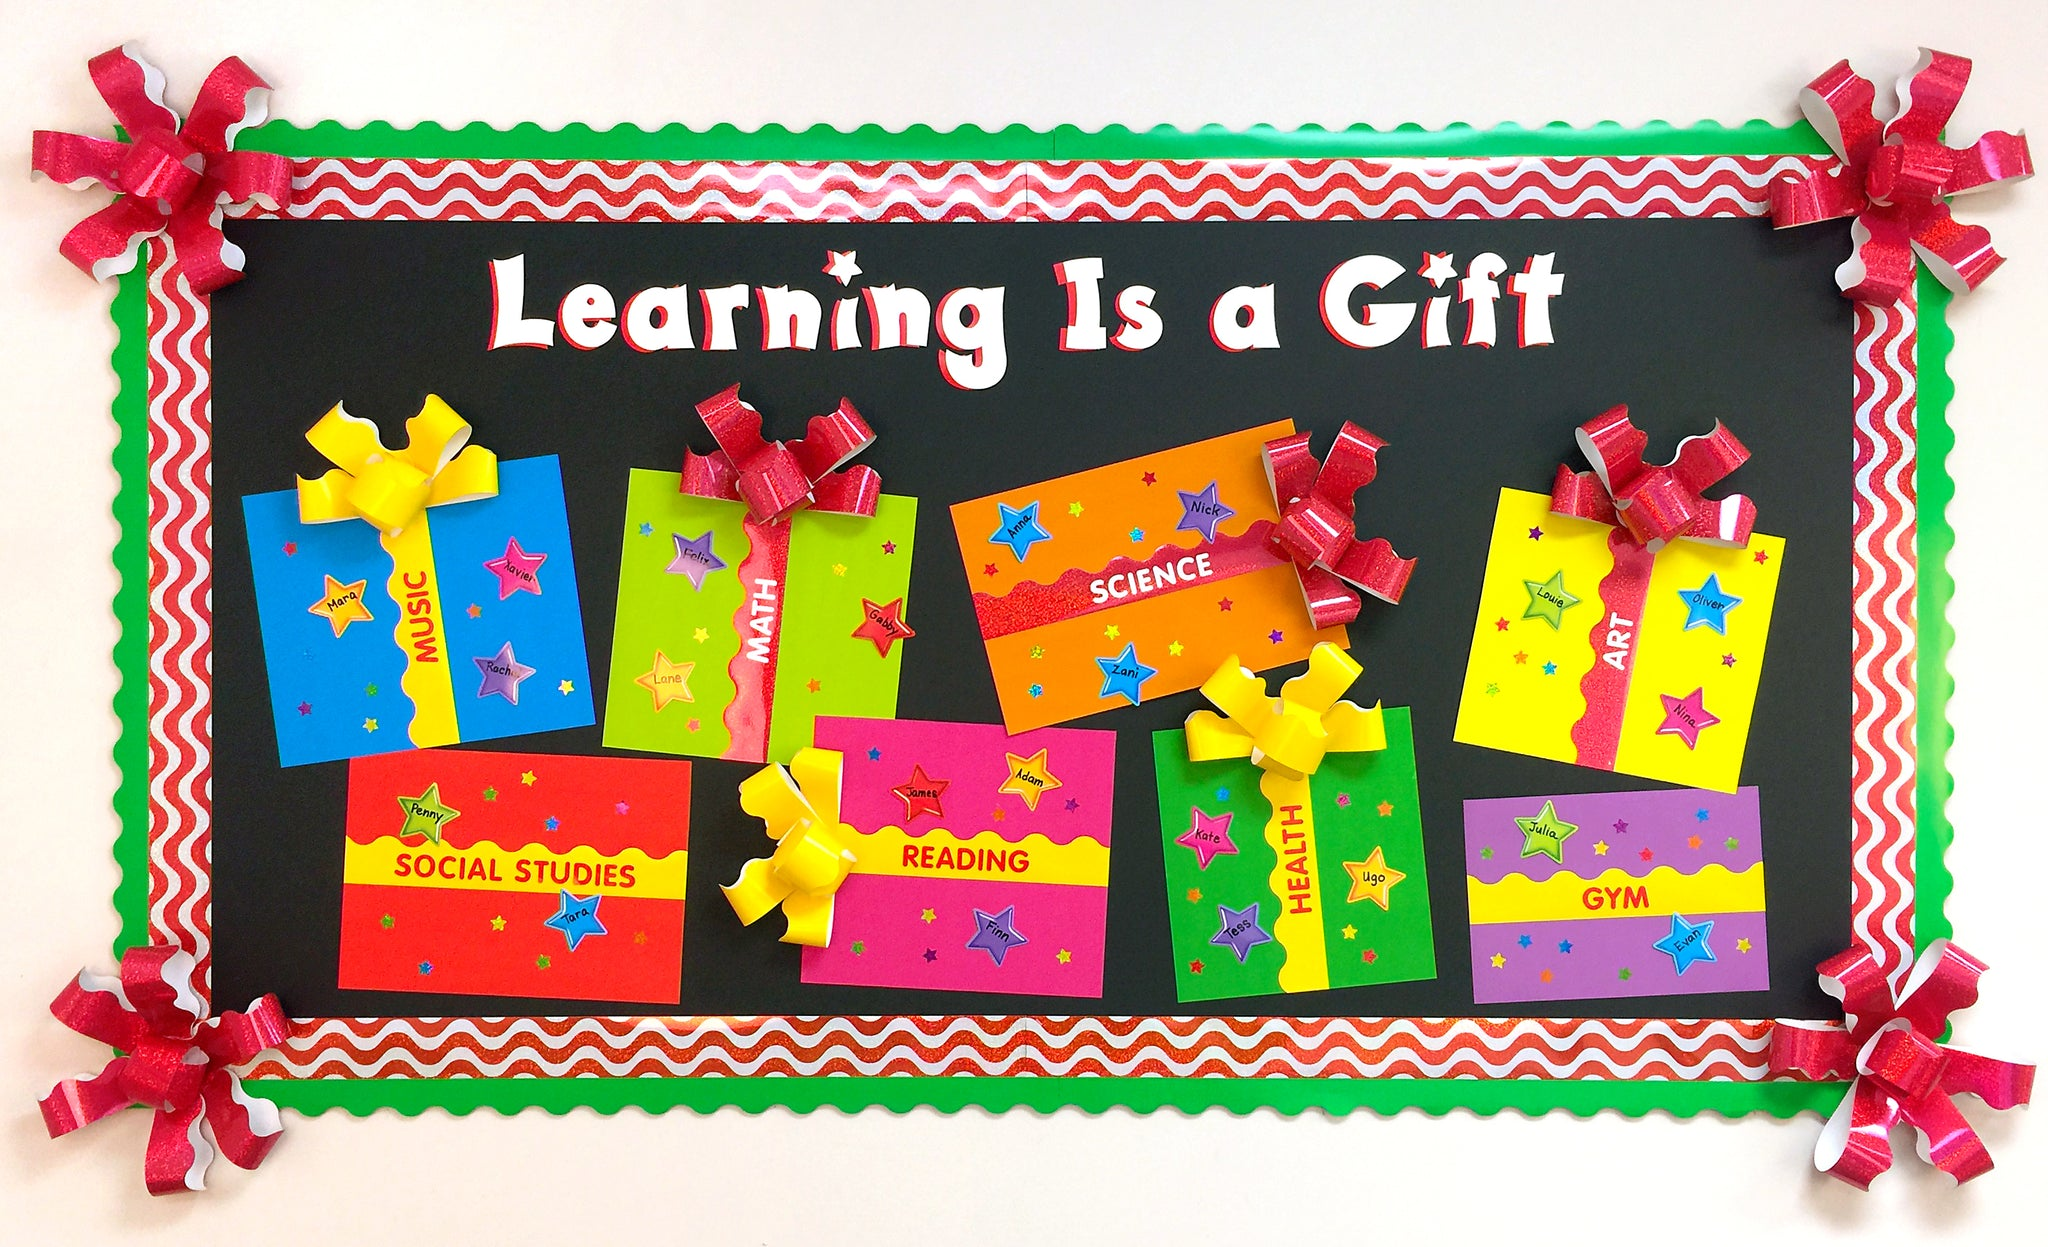 Learning is a gift Christmas holiday bulletin board idea.